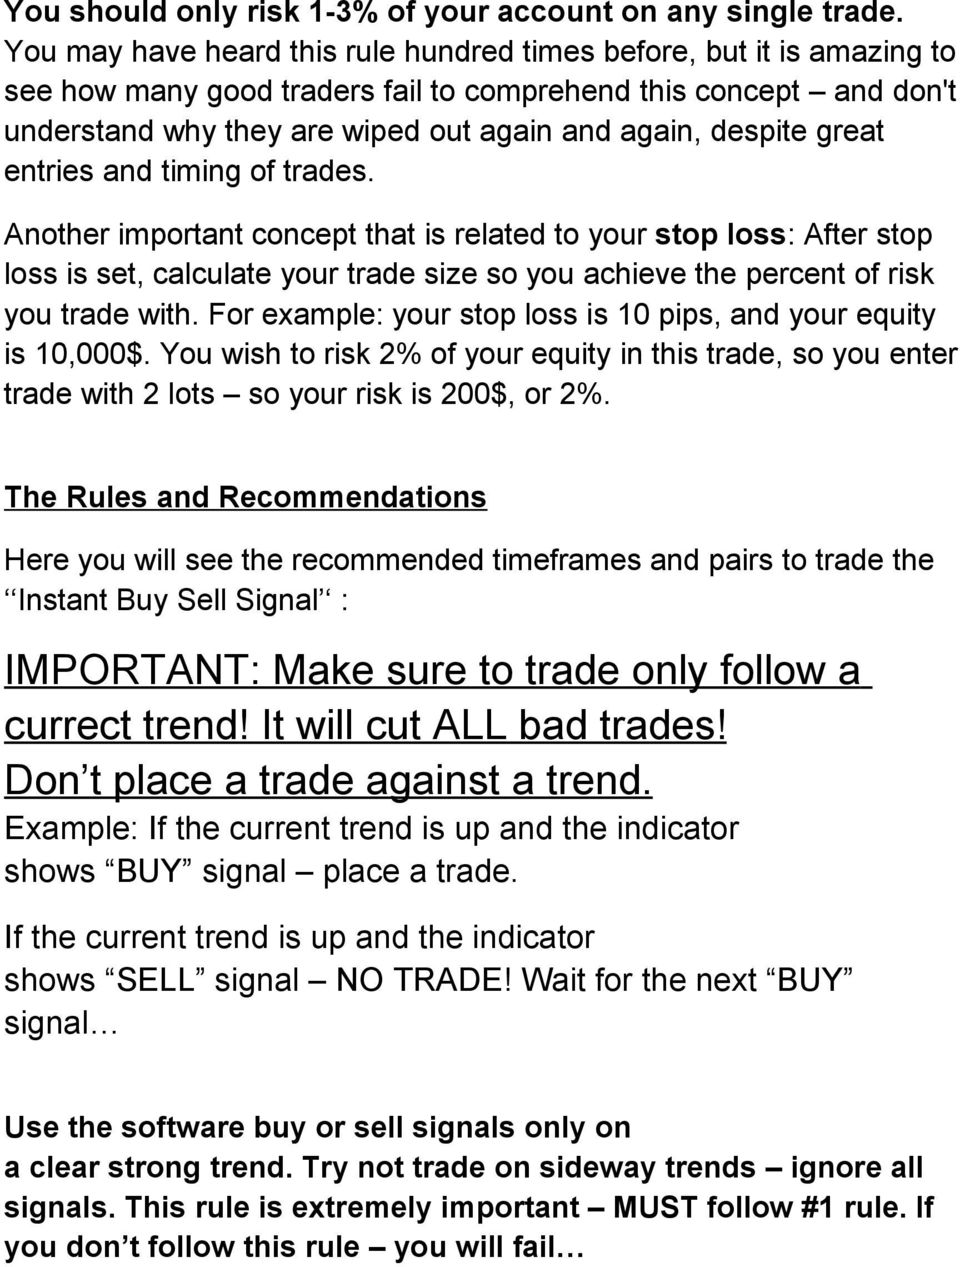 great entries and timing of trades. Another important concept that is related to your stop loss: After stop loss is set, calculate your trade size so you achieve the percent of risk you trade with.